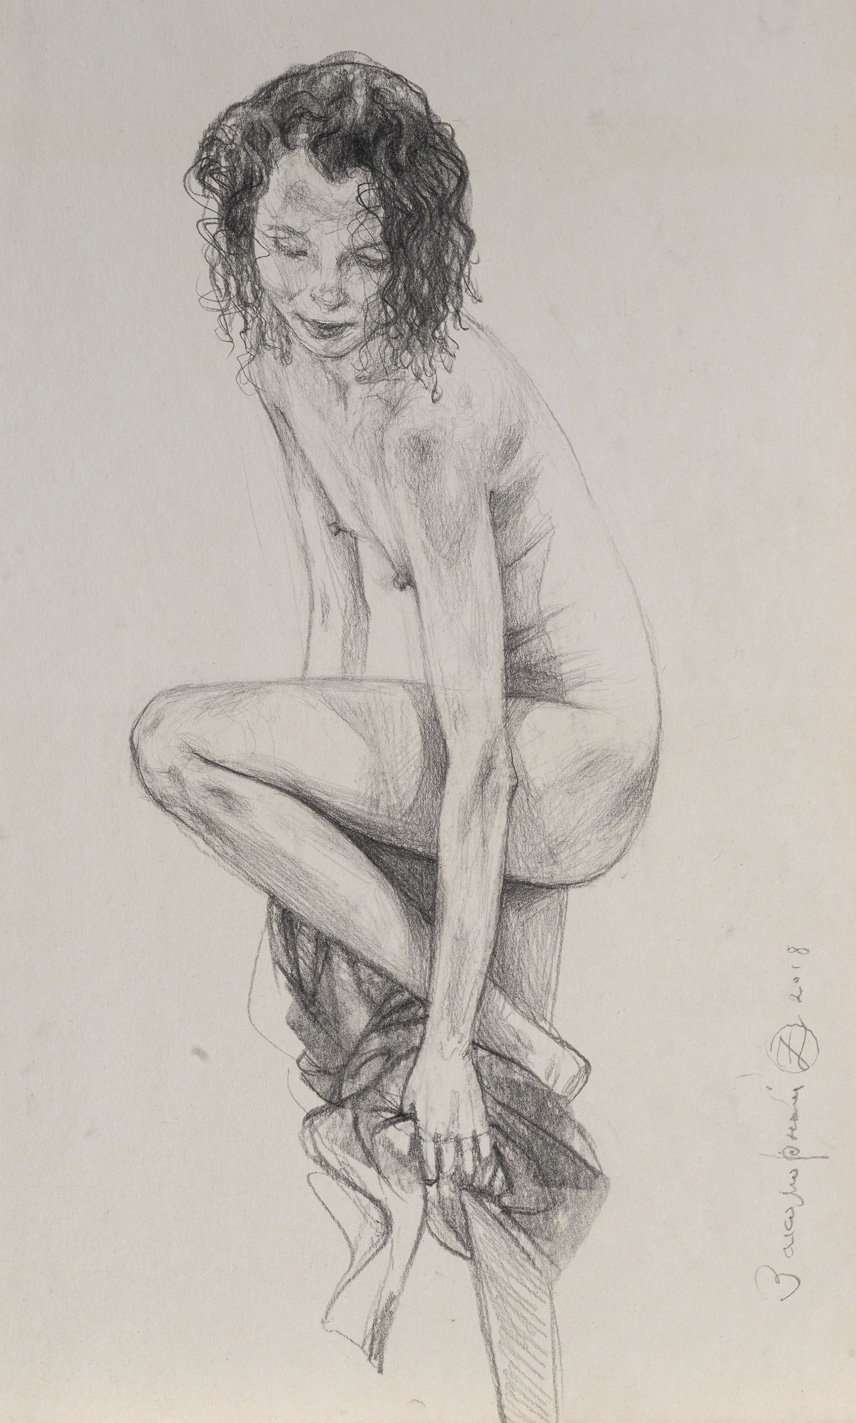 Oleg Zakomorny, Sketches, series Bather, 2018